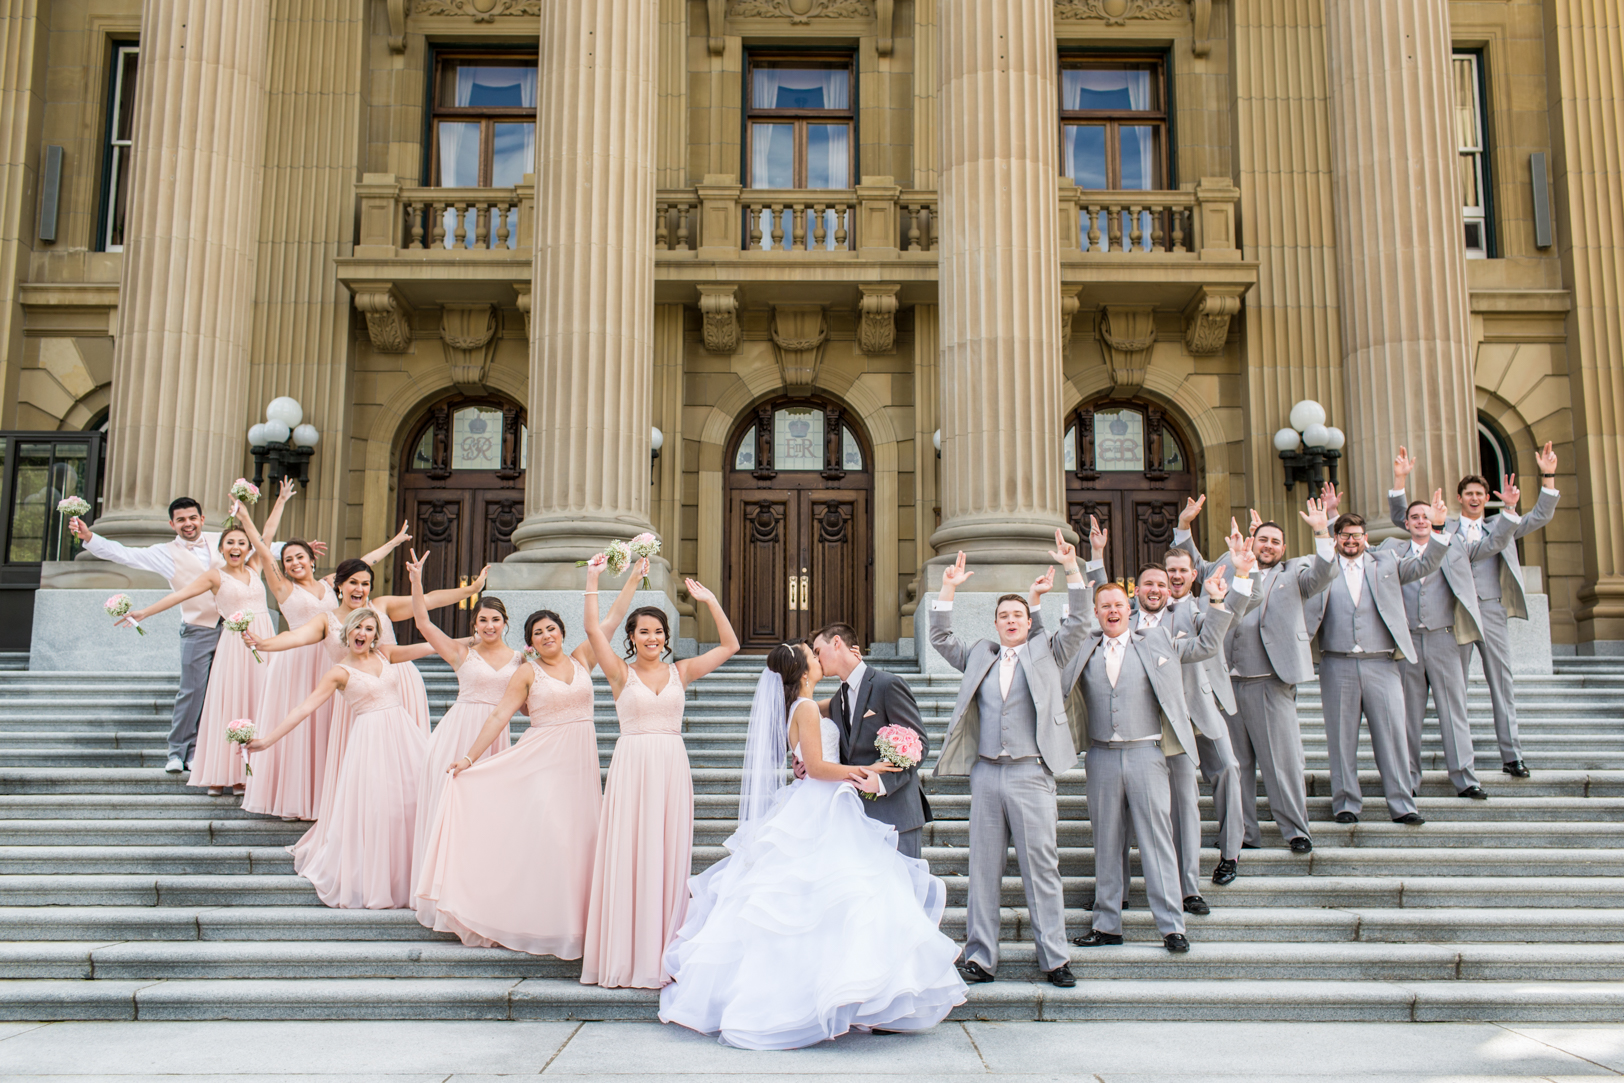 Wedding Photos at Alberta Legislature